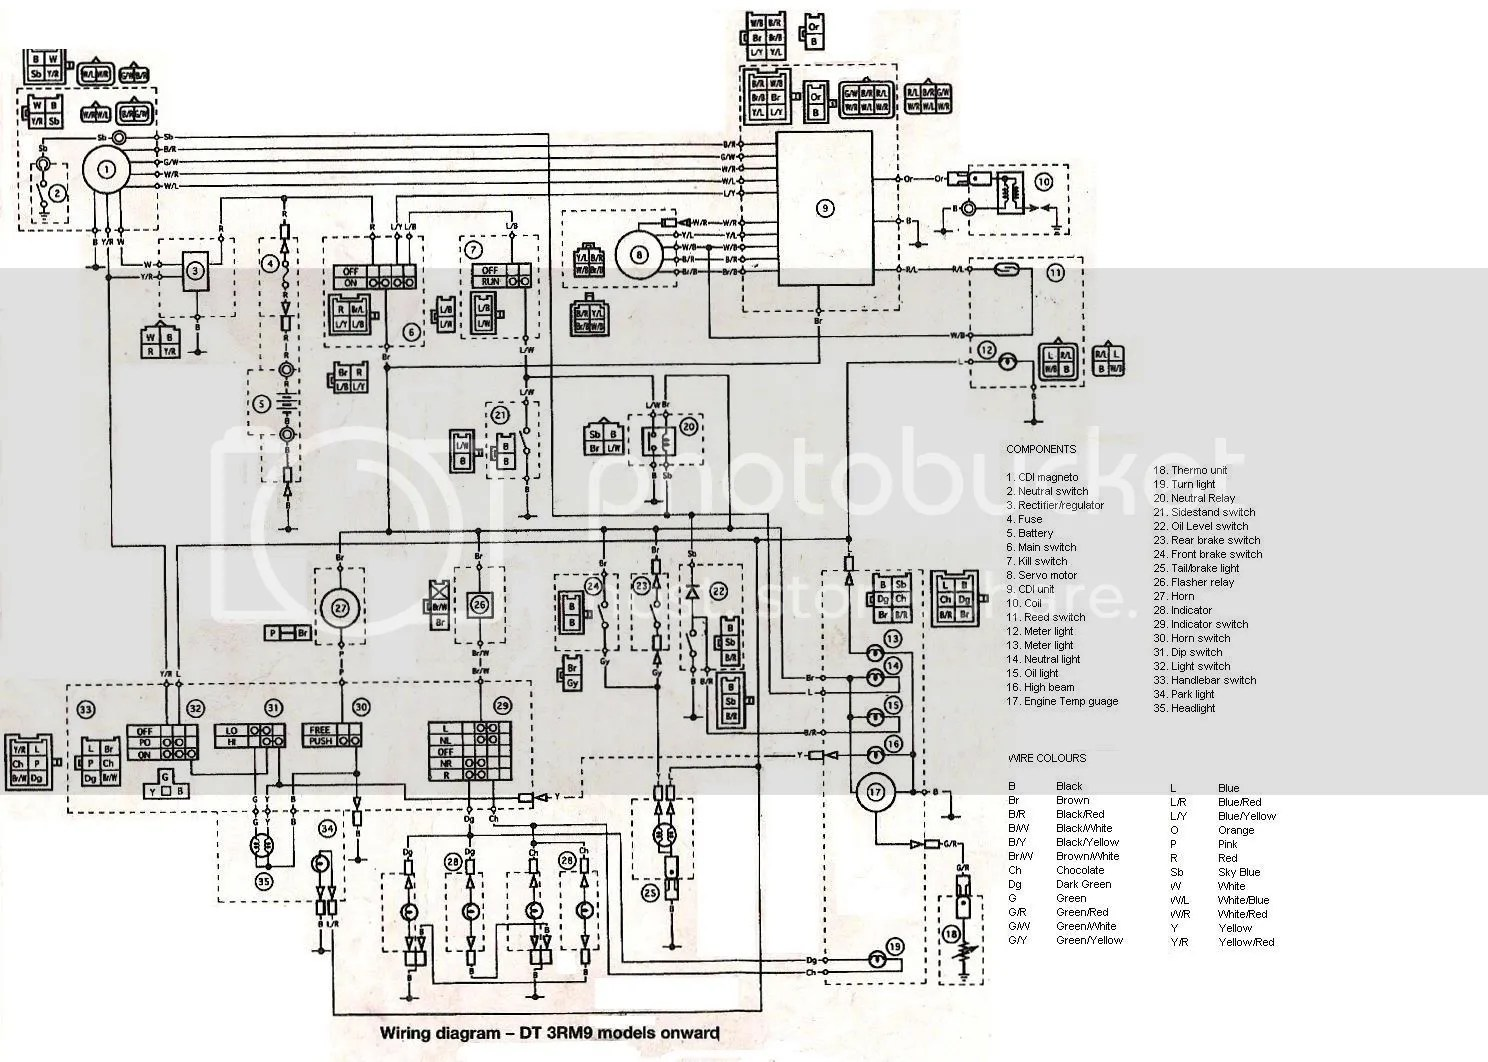 Yamaha Dt 50 R Wiring Diagram Full Version Hd Quality Wiring Diagram Veildiagram Changezvotrevie Fr